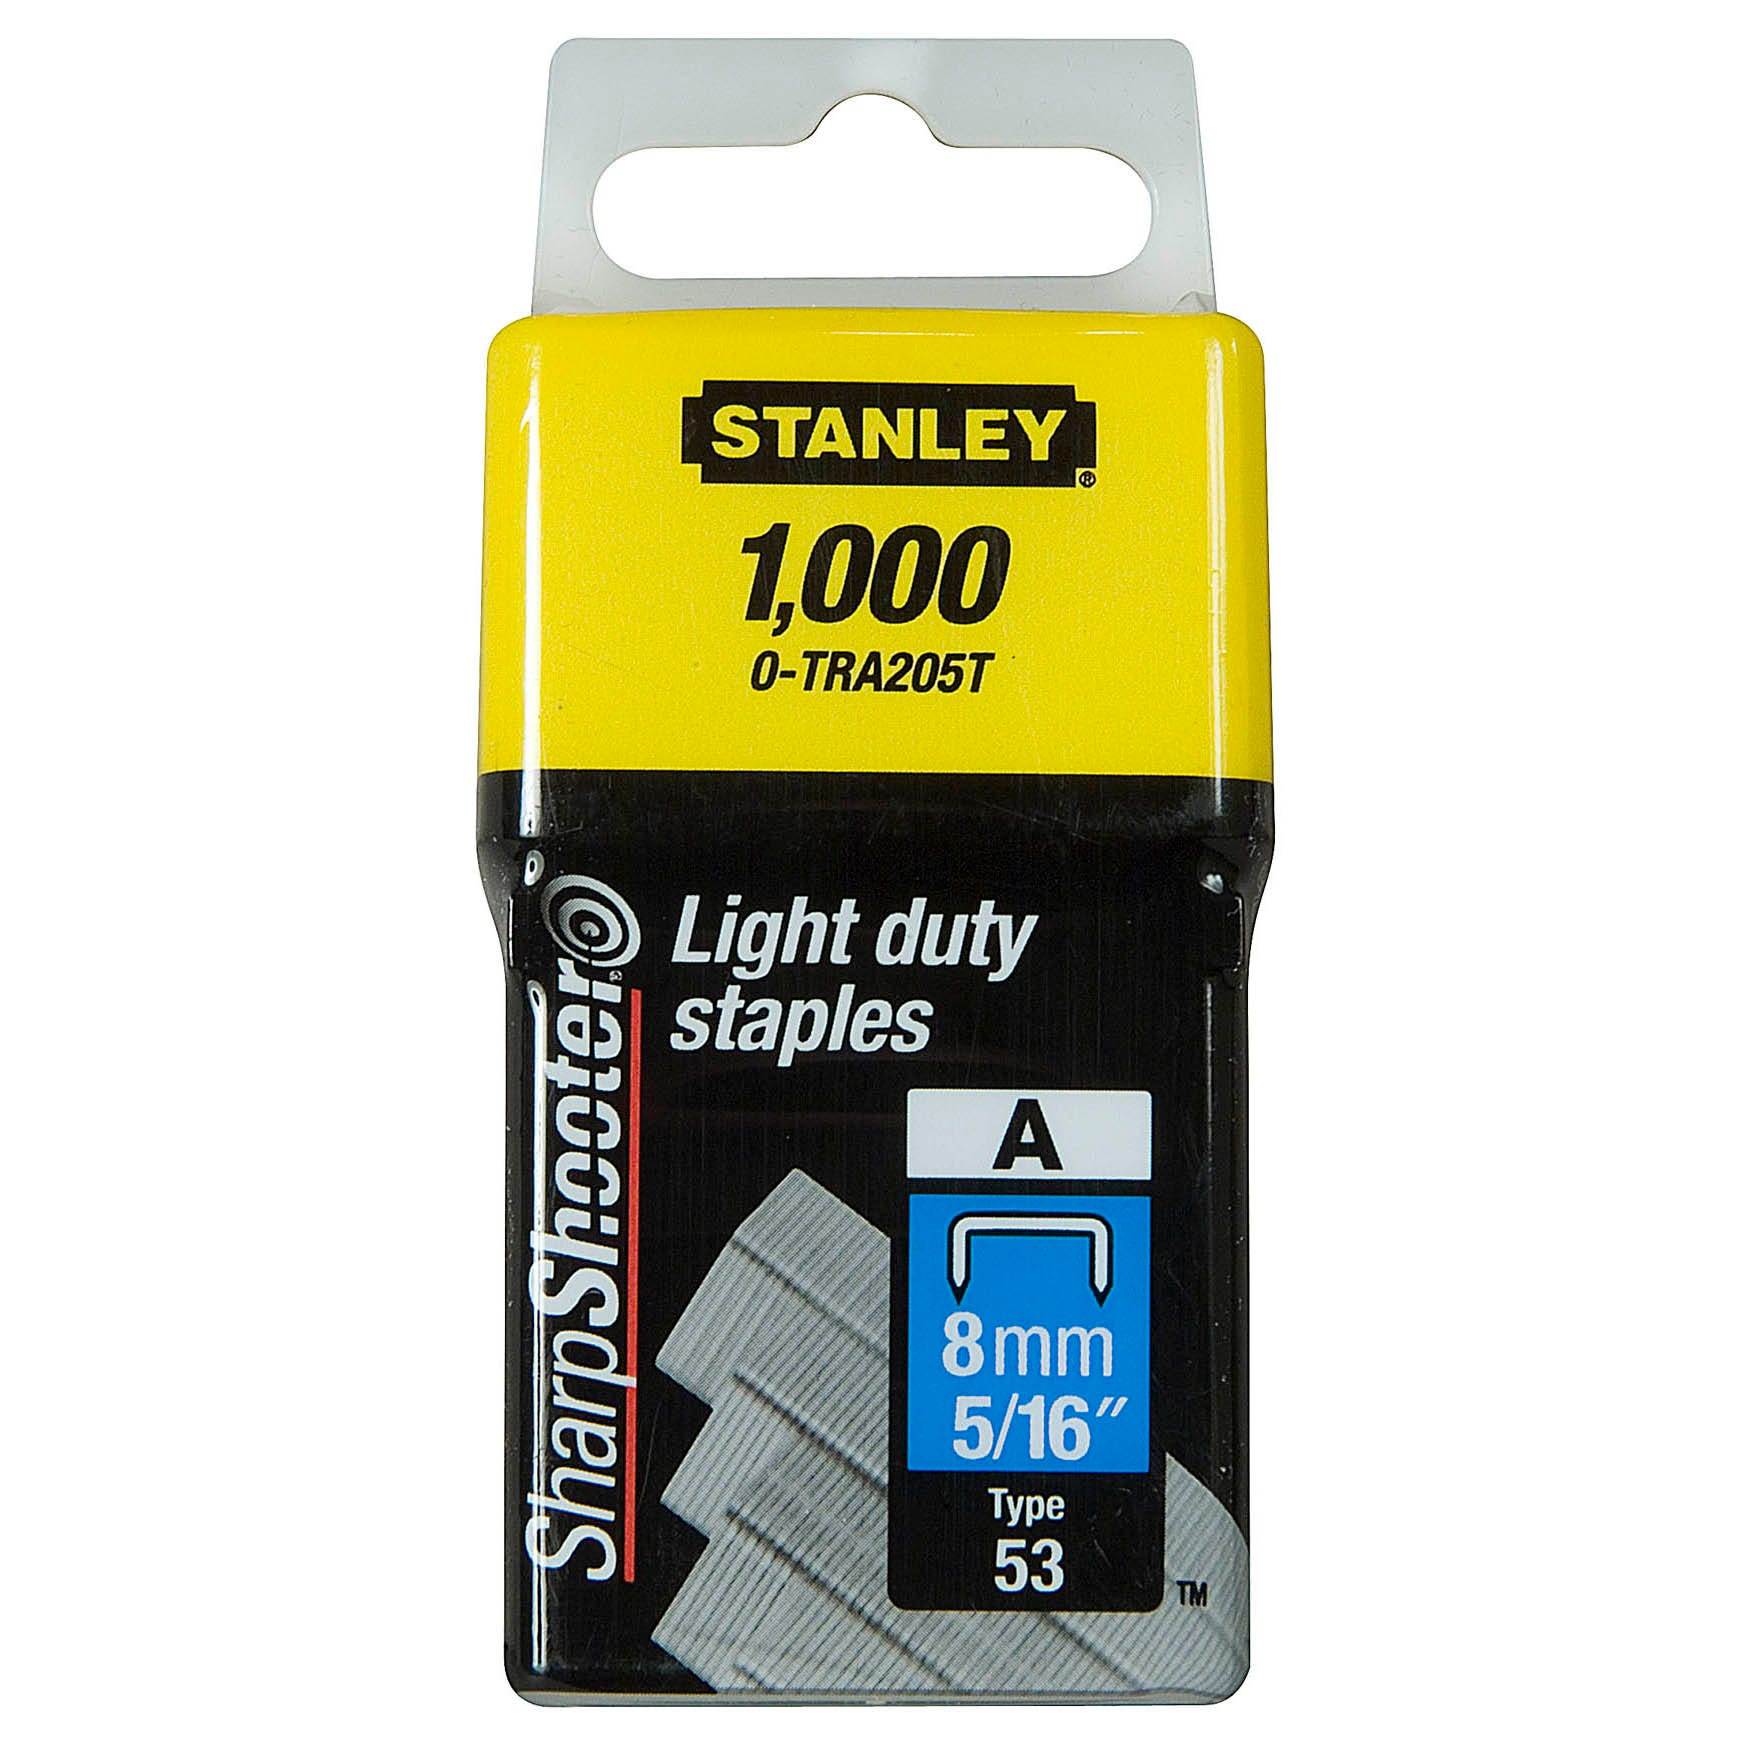 Image of Stanley 8mm Light Duty 'a' Type Staples (box 1000)